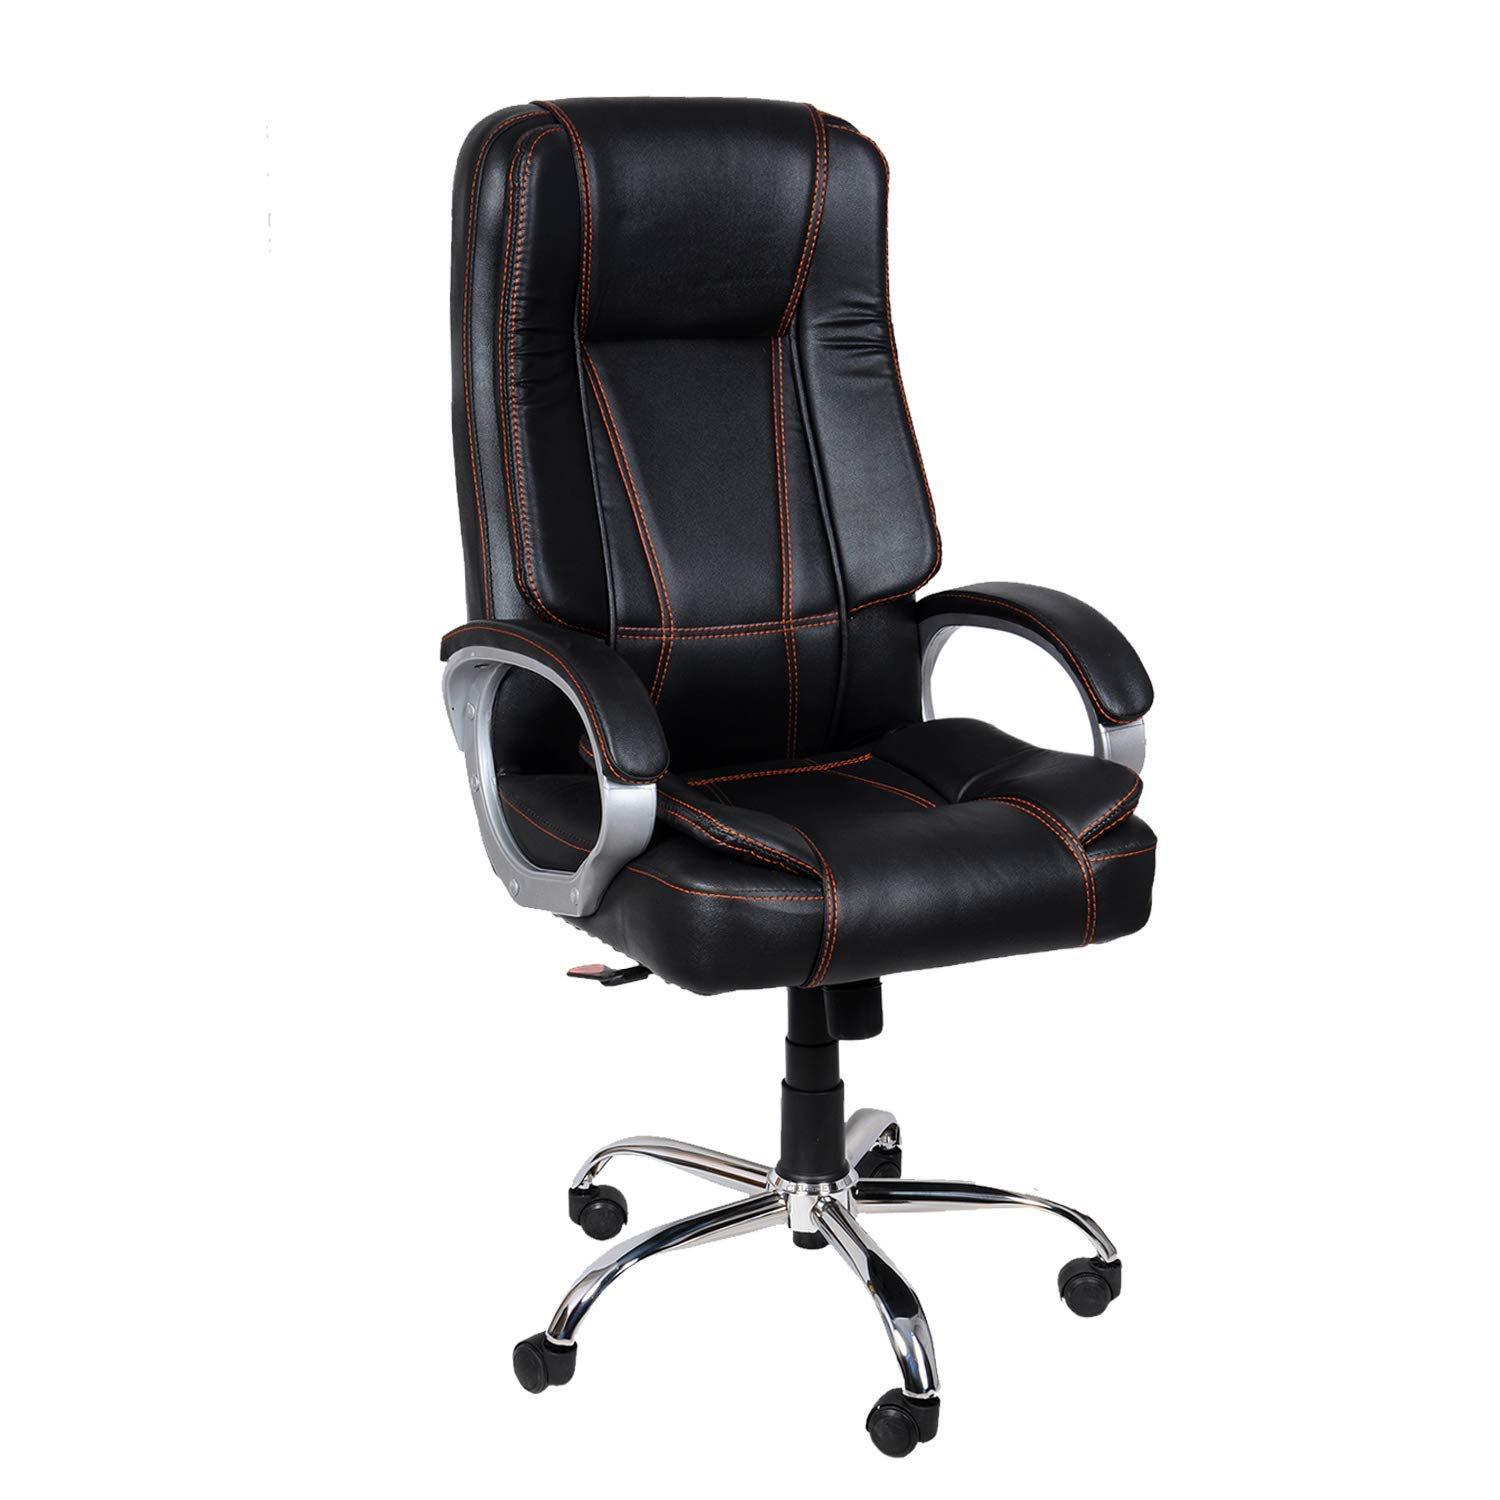 buy gaming chair india